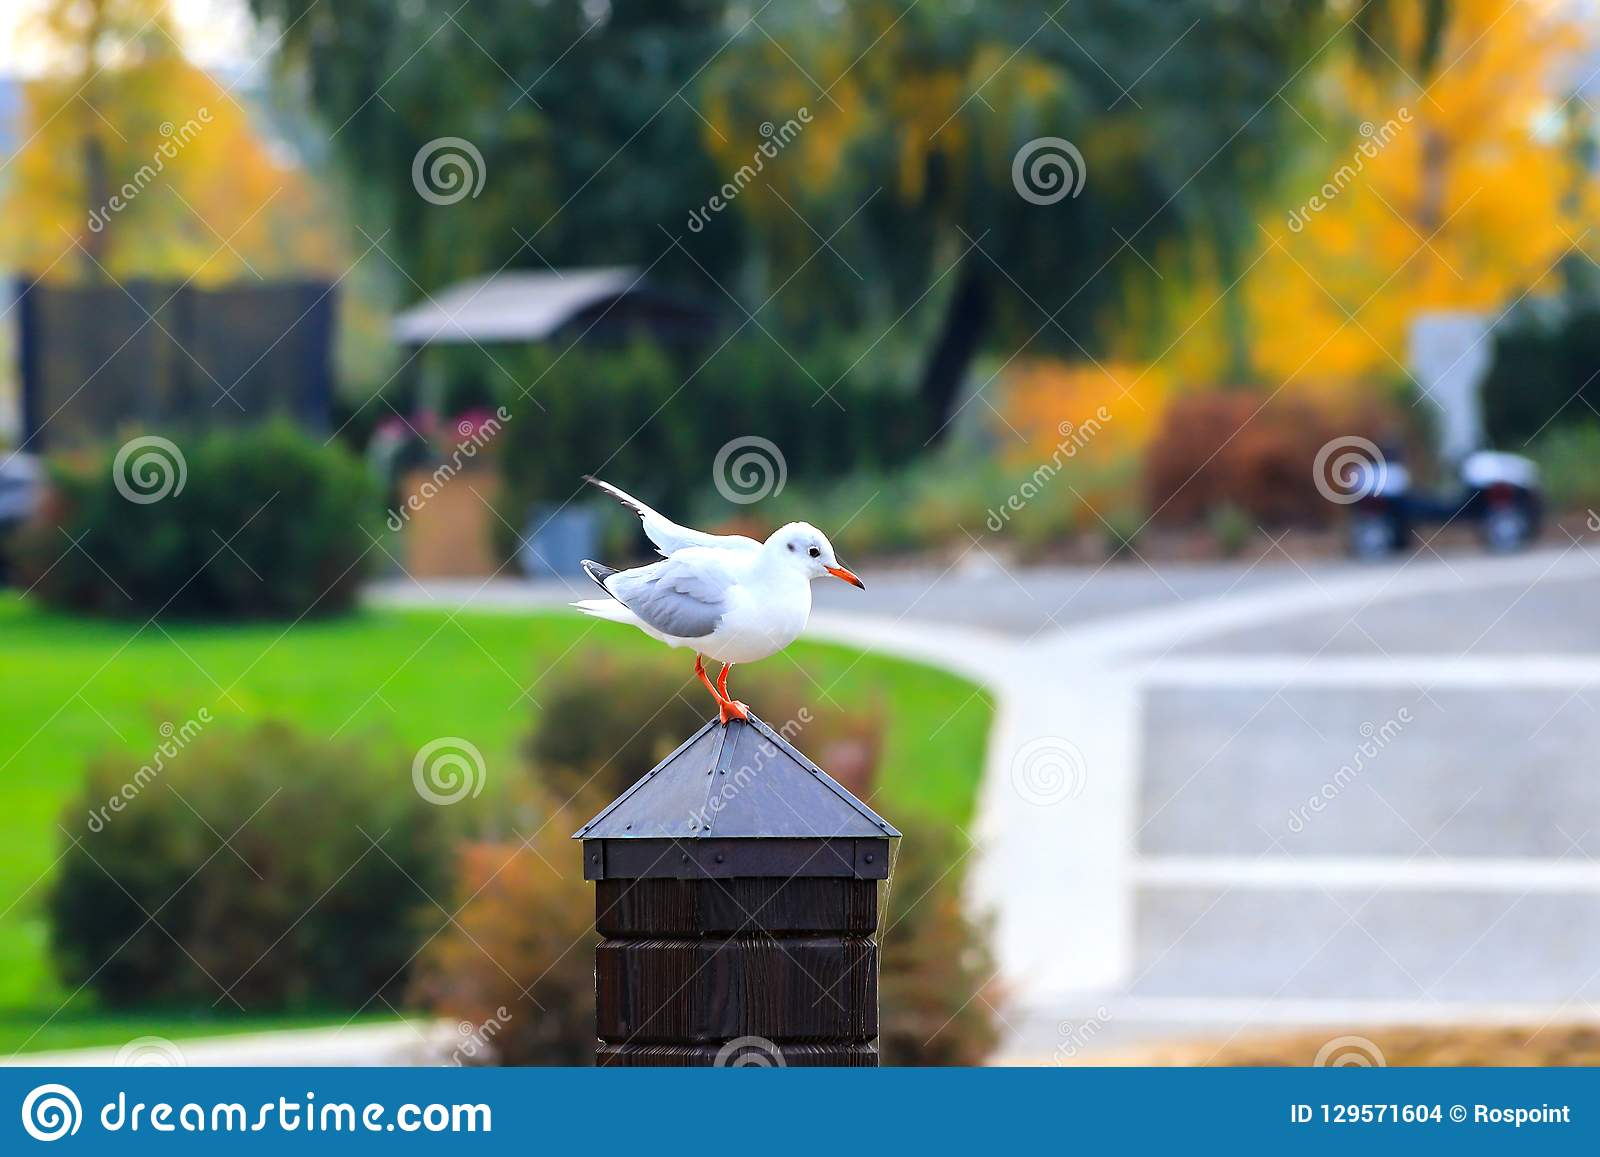 A large river white gull sits on a wooden post against the background of an autumn park with yellow trees.